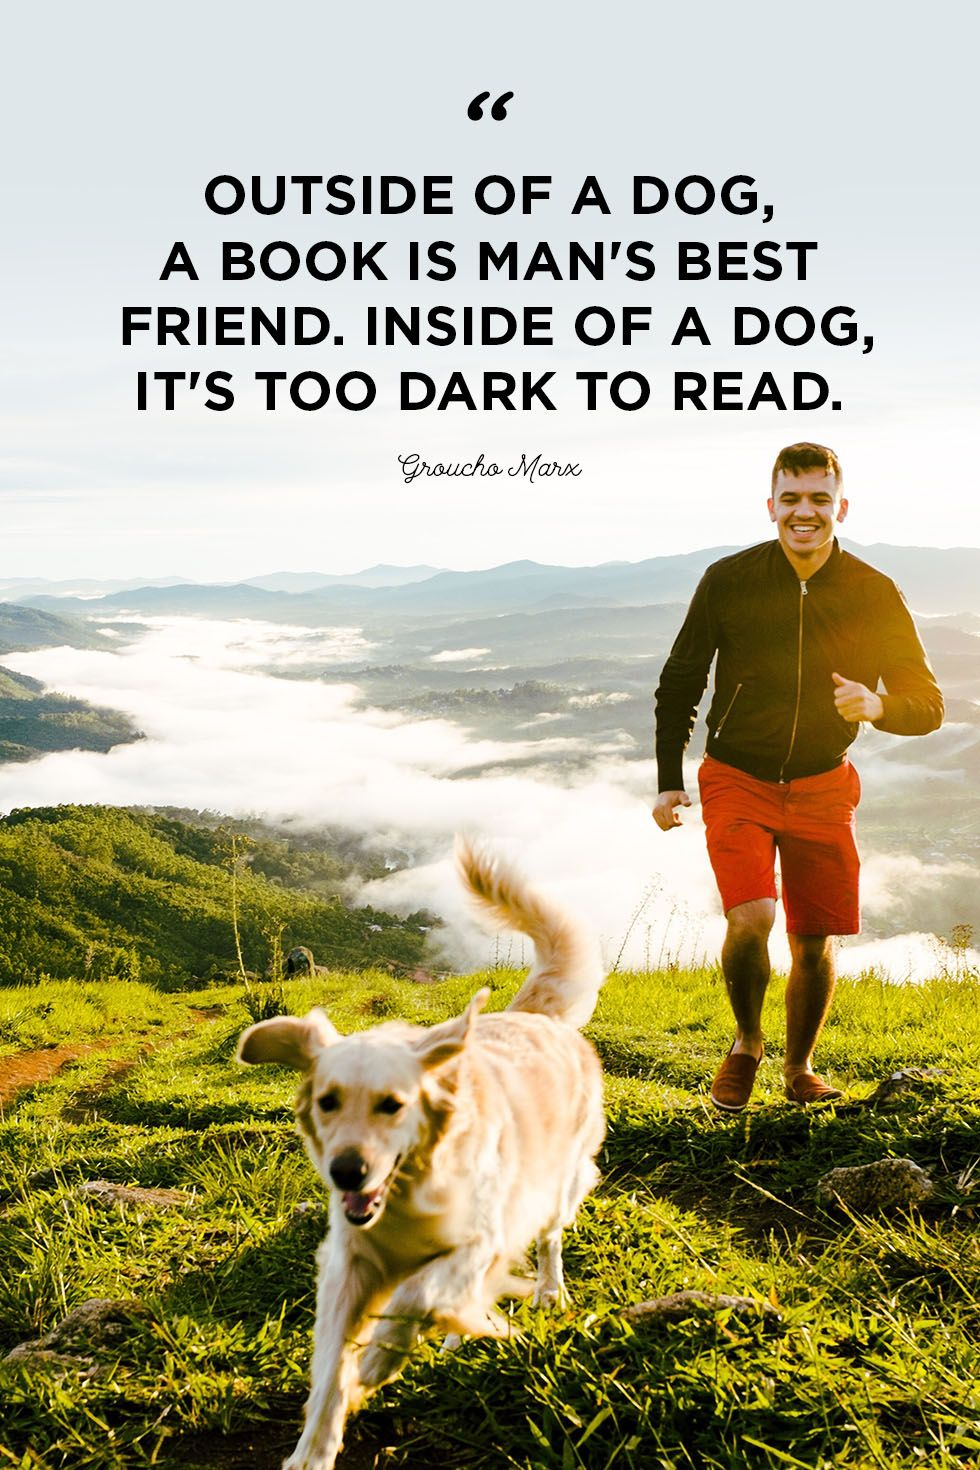 Man's Best Friend Quotes : man's, friend, quotes, Quotes, Cute,, Sweet, About